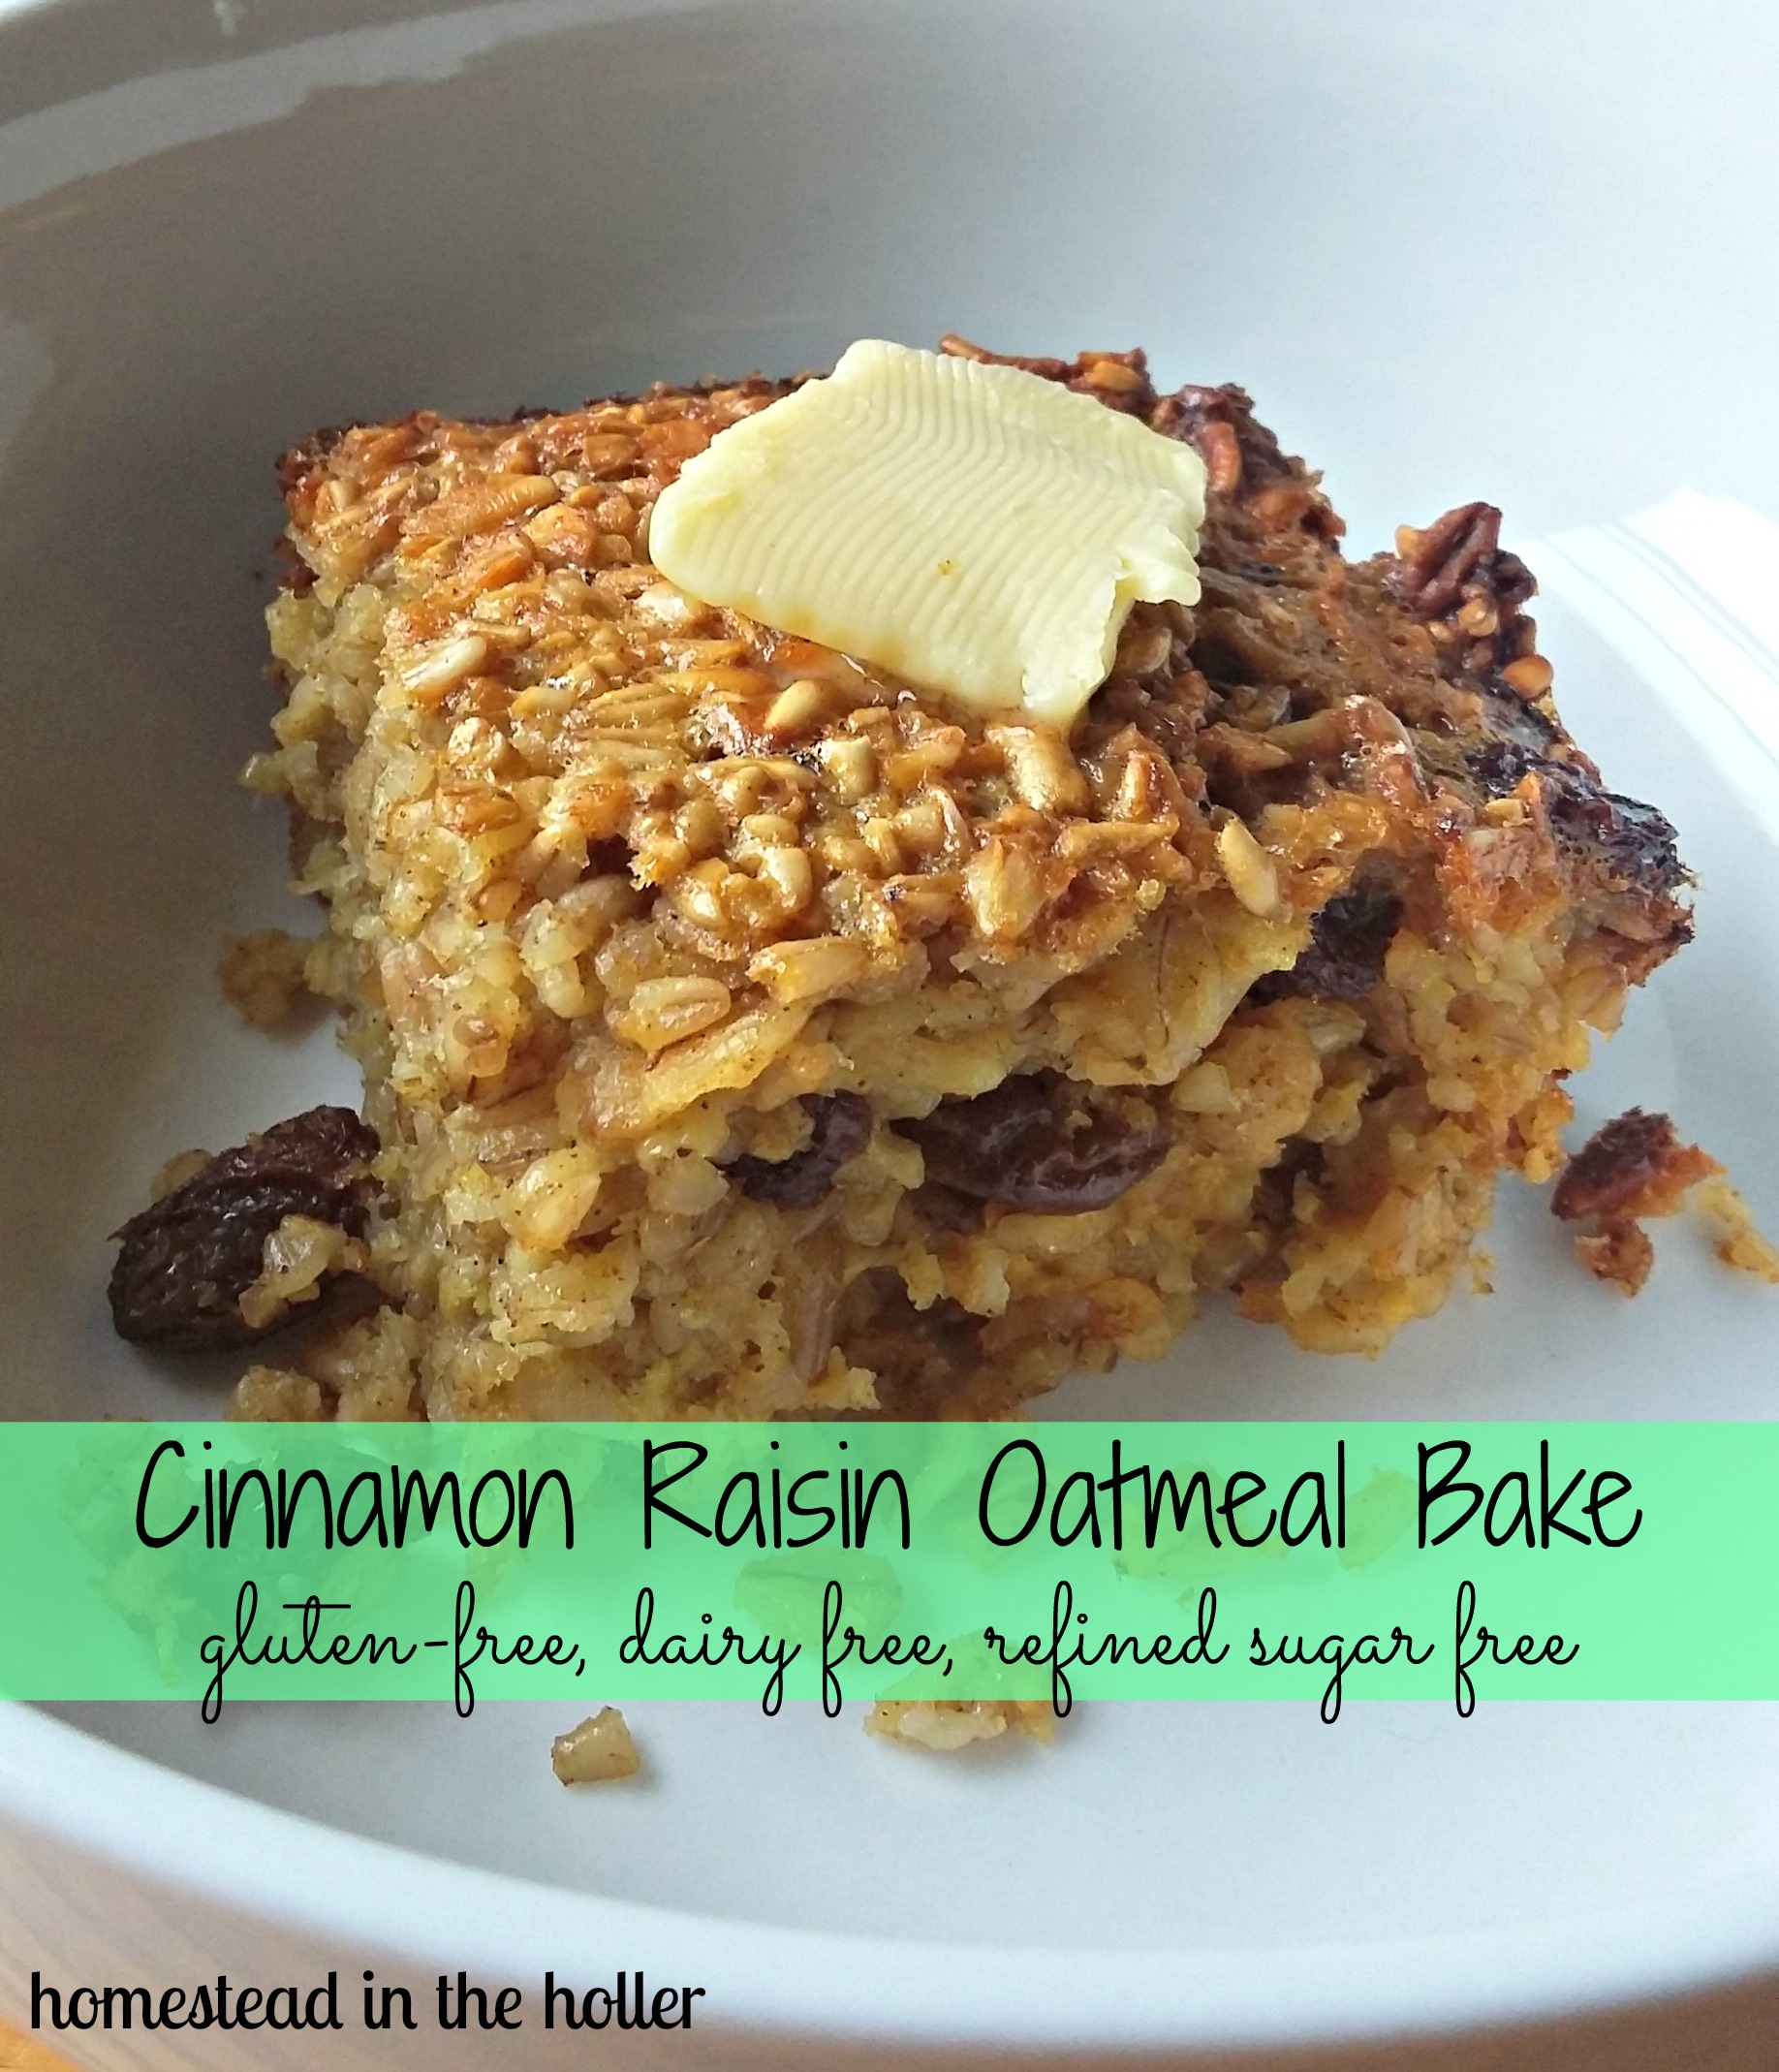 Cinnamon Raisin Oatmeal Bake